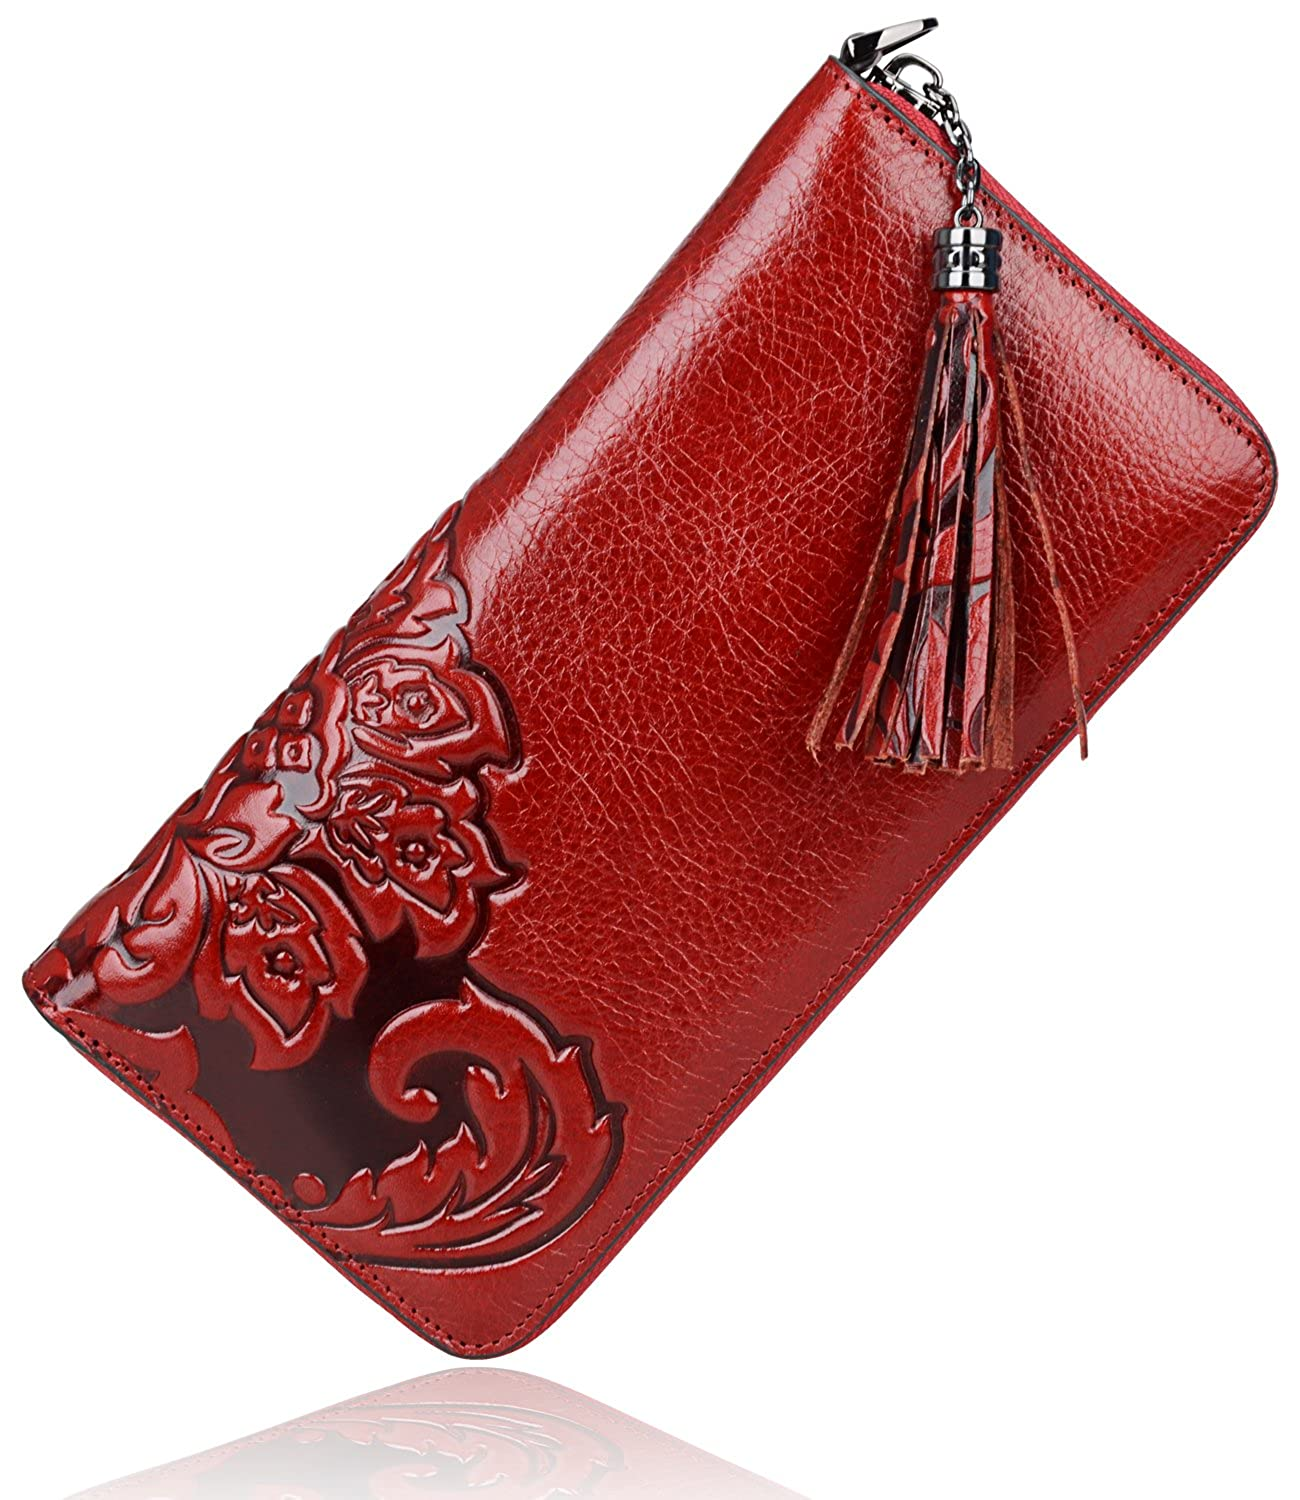 PIJUSHI Classic Clutch Genuine Leather Long Wallet Card Holder Purse 91854